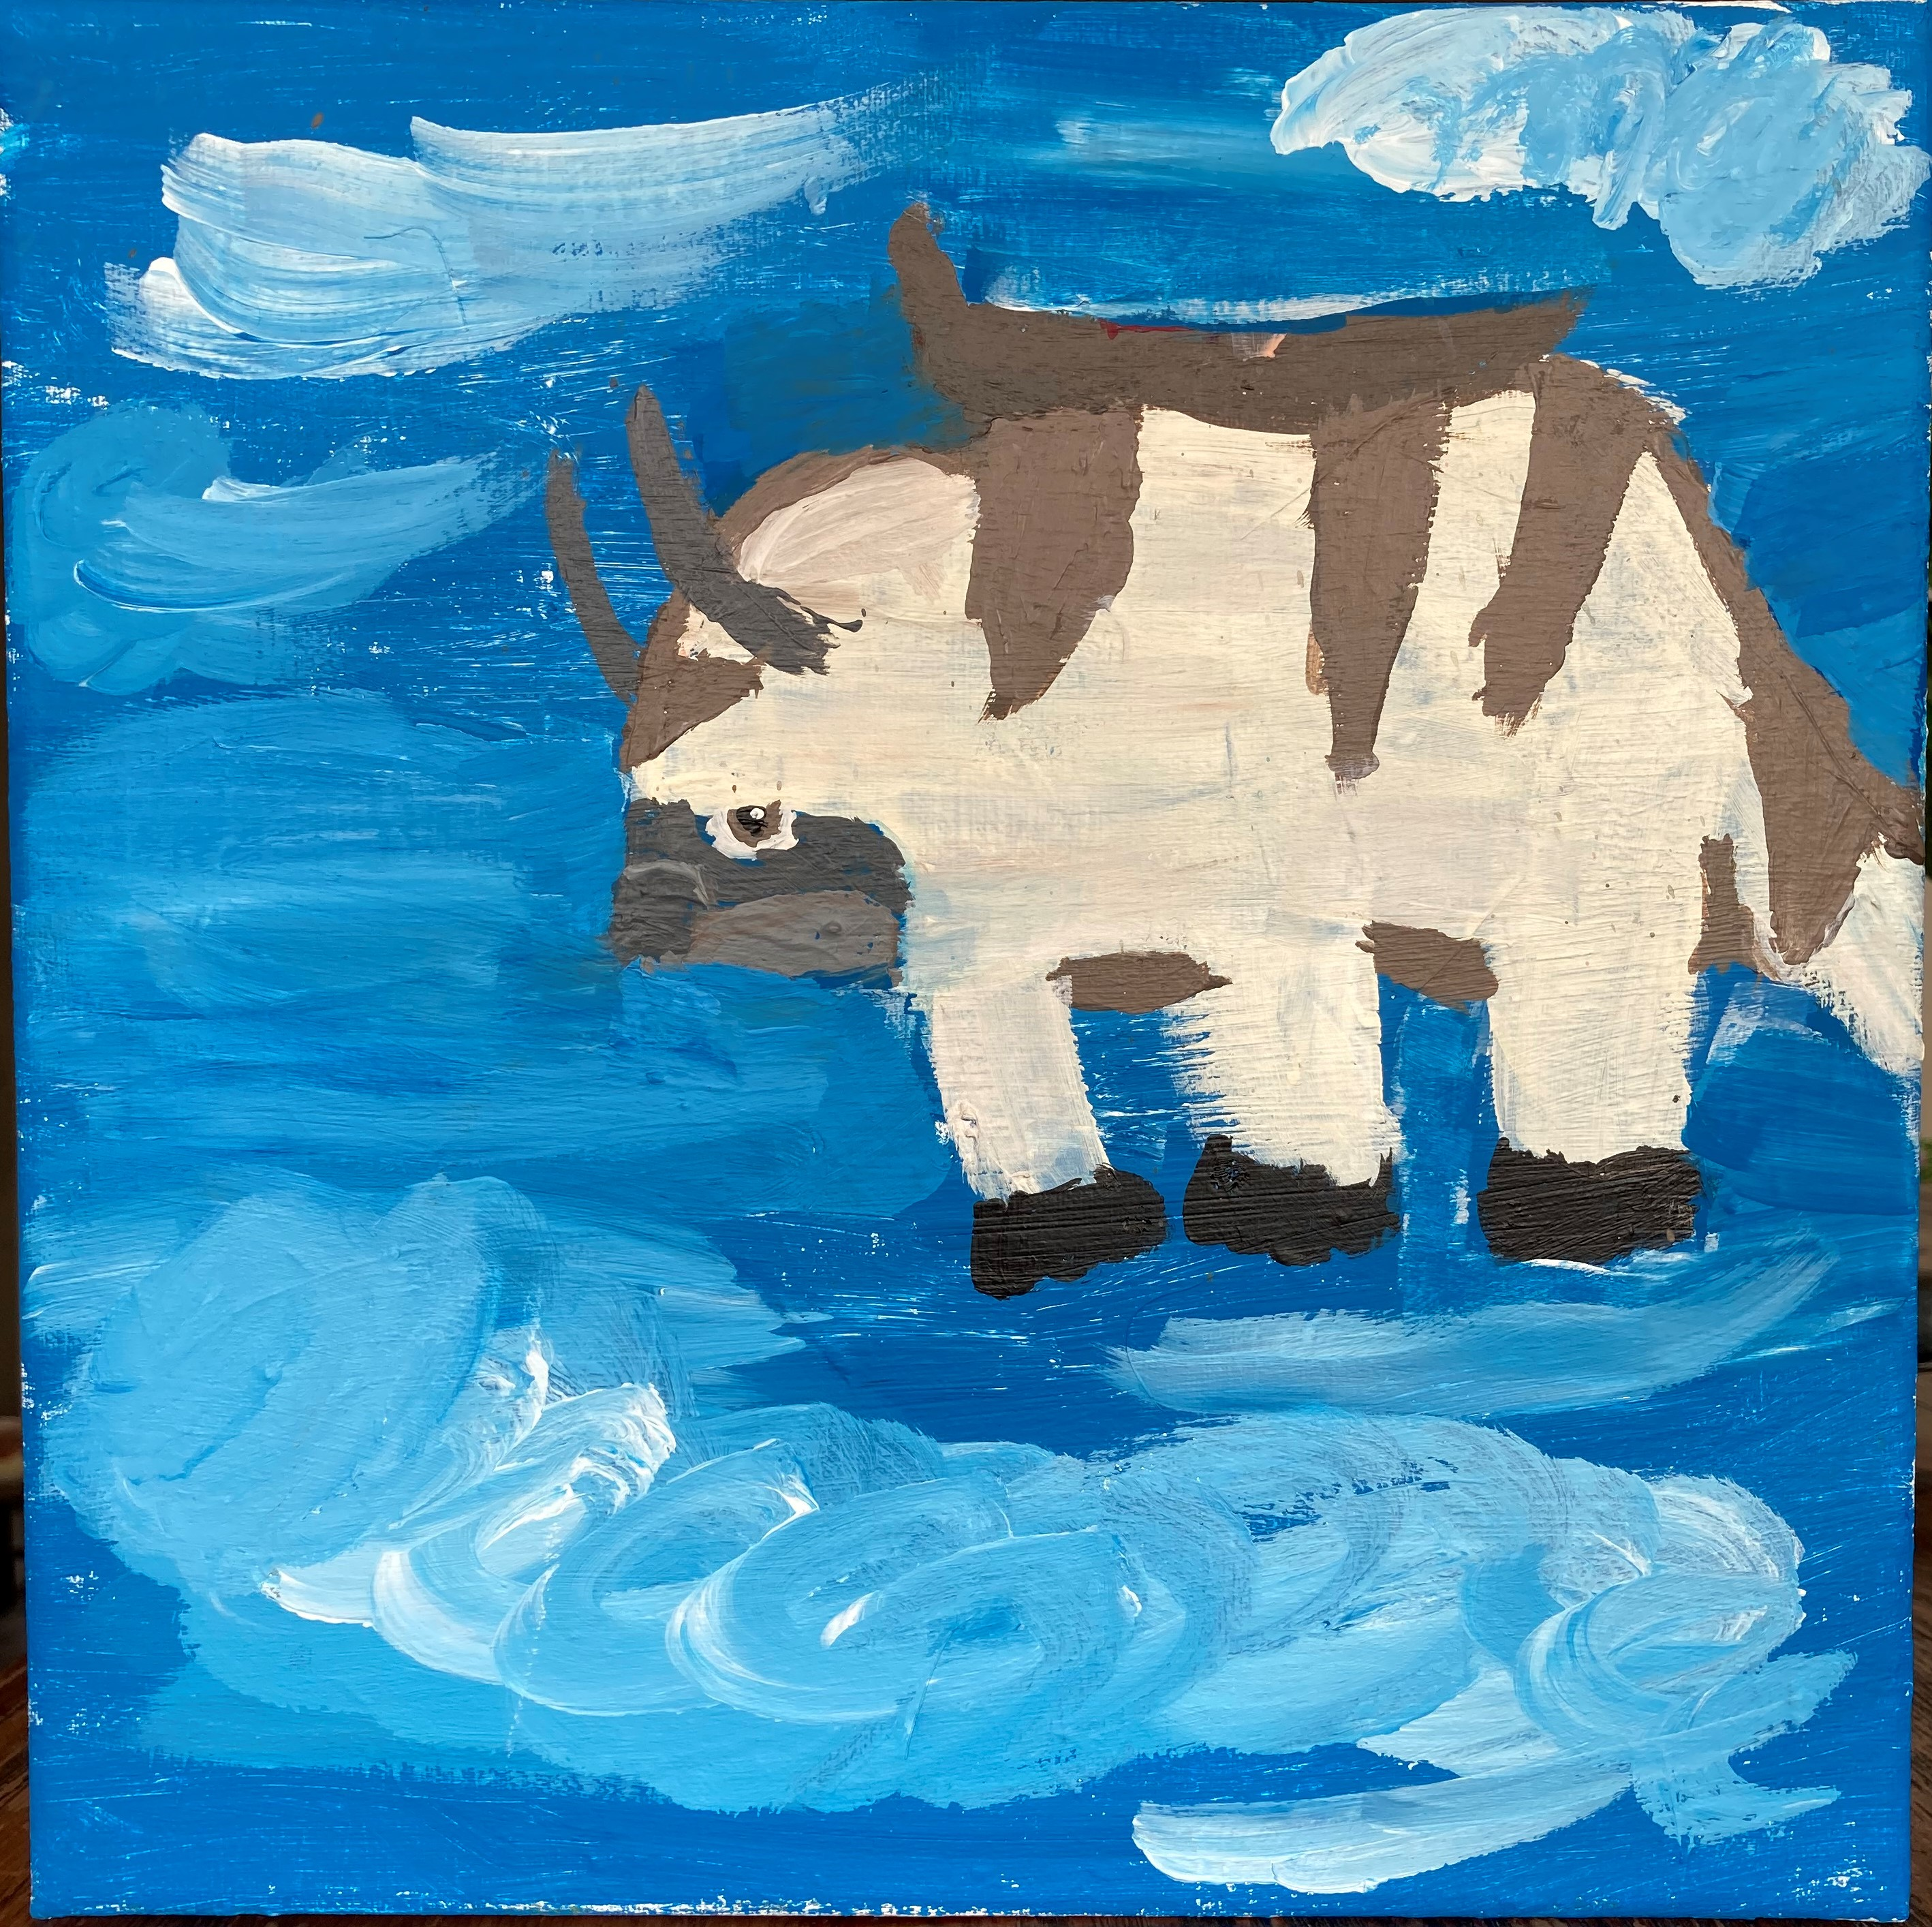 Appa in the Blue Sky by Mila Twohig